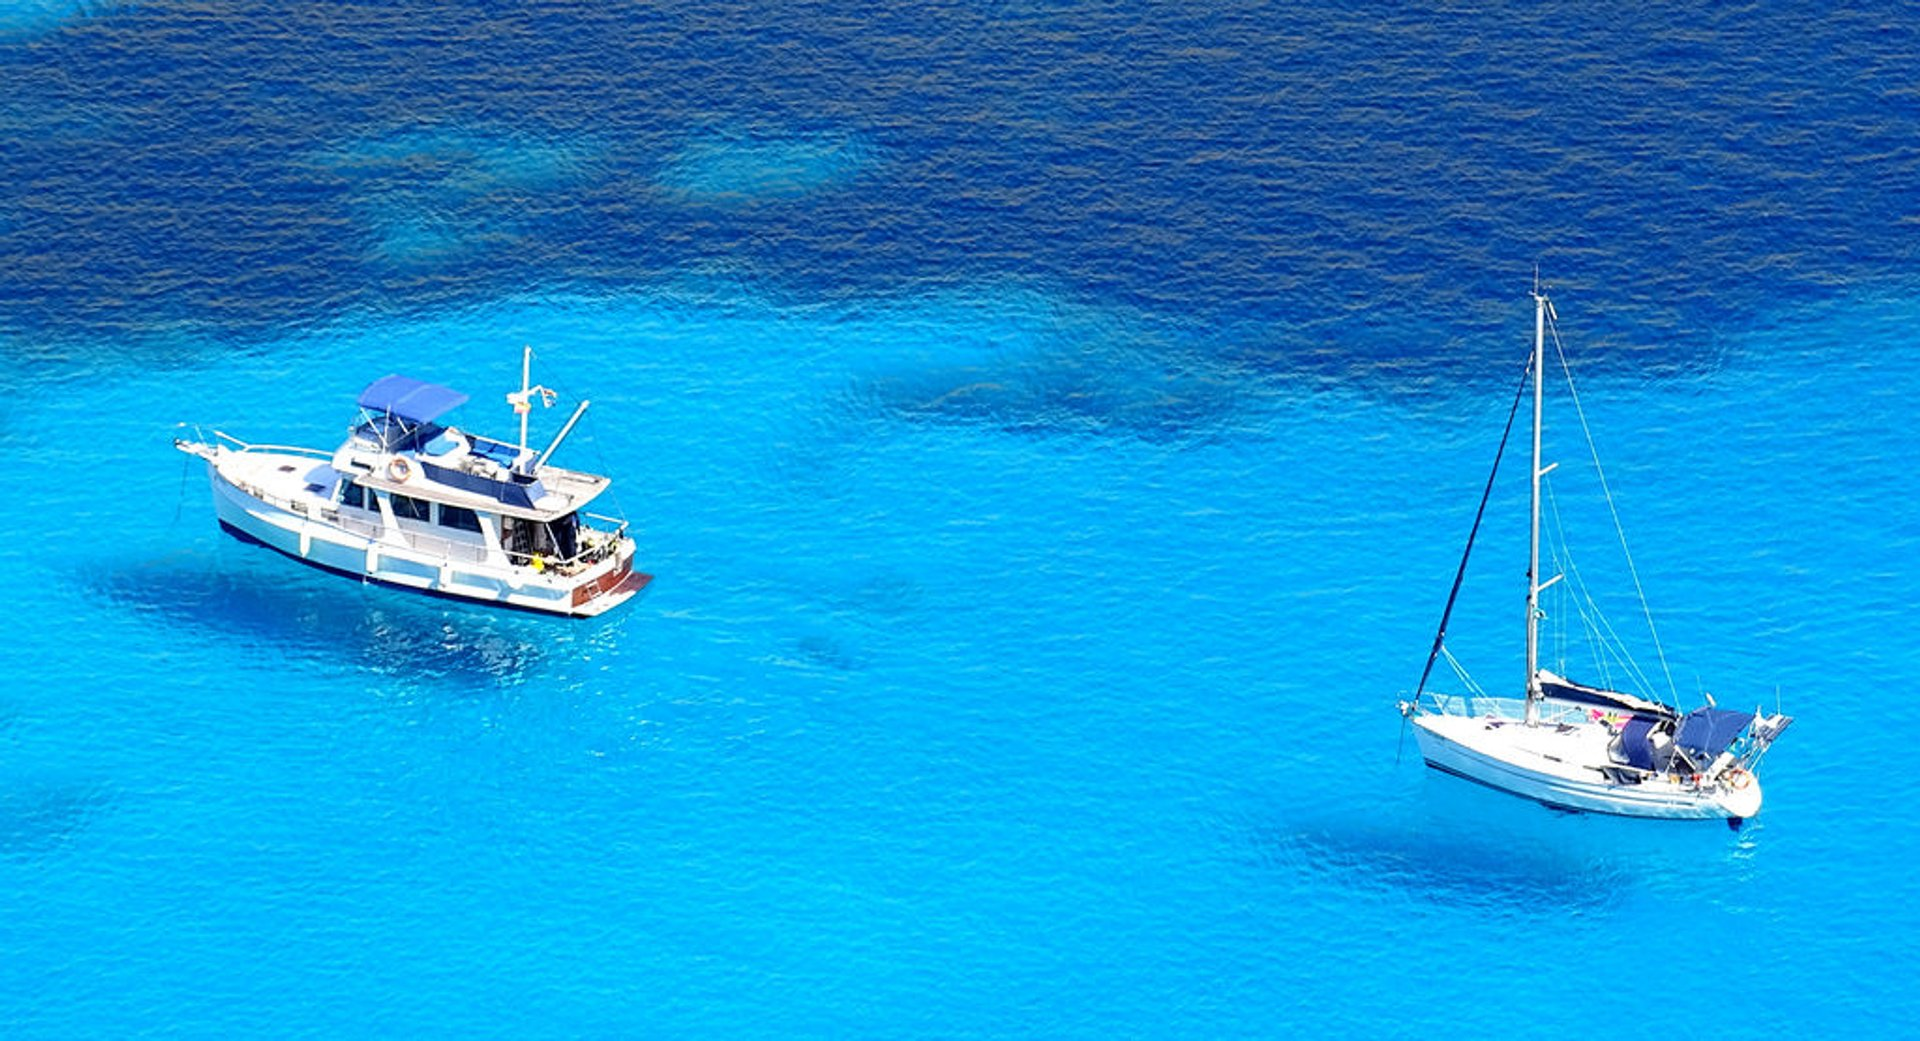 Sailing around the Balearic Islands in Balearic Islands 2020 - Best Time